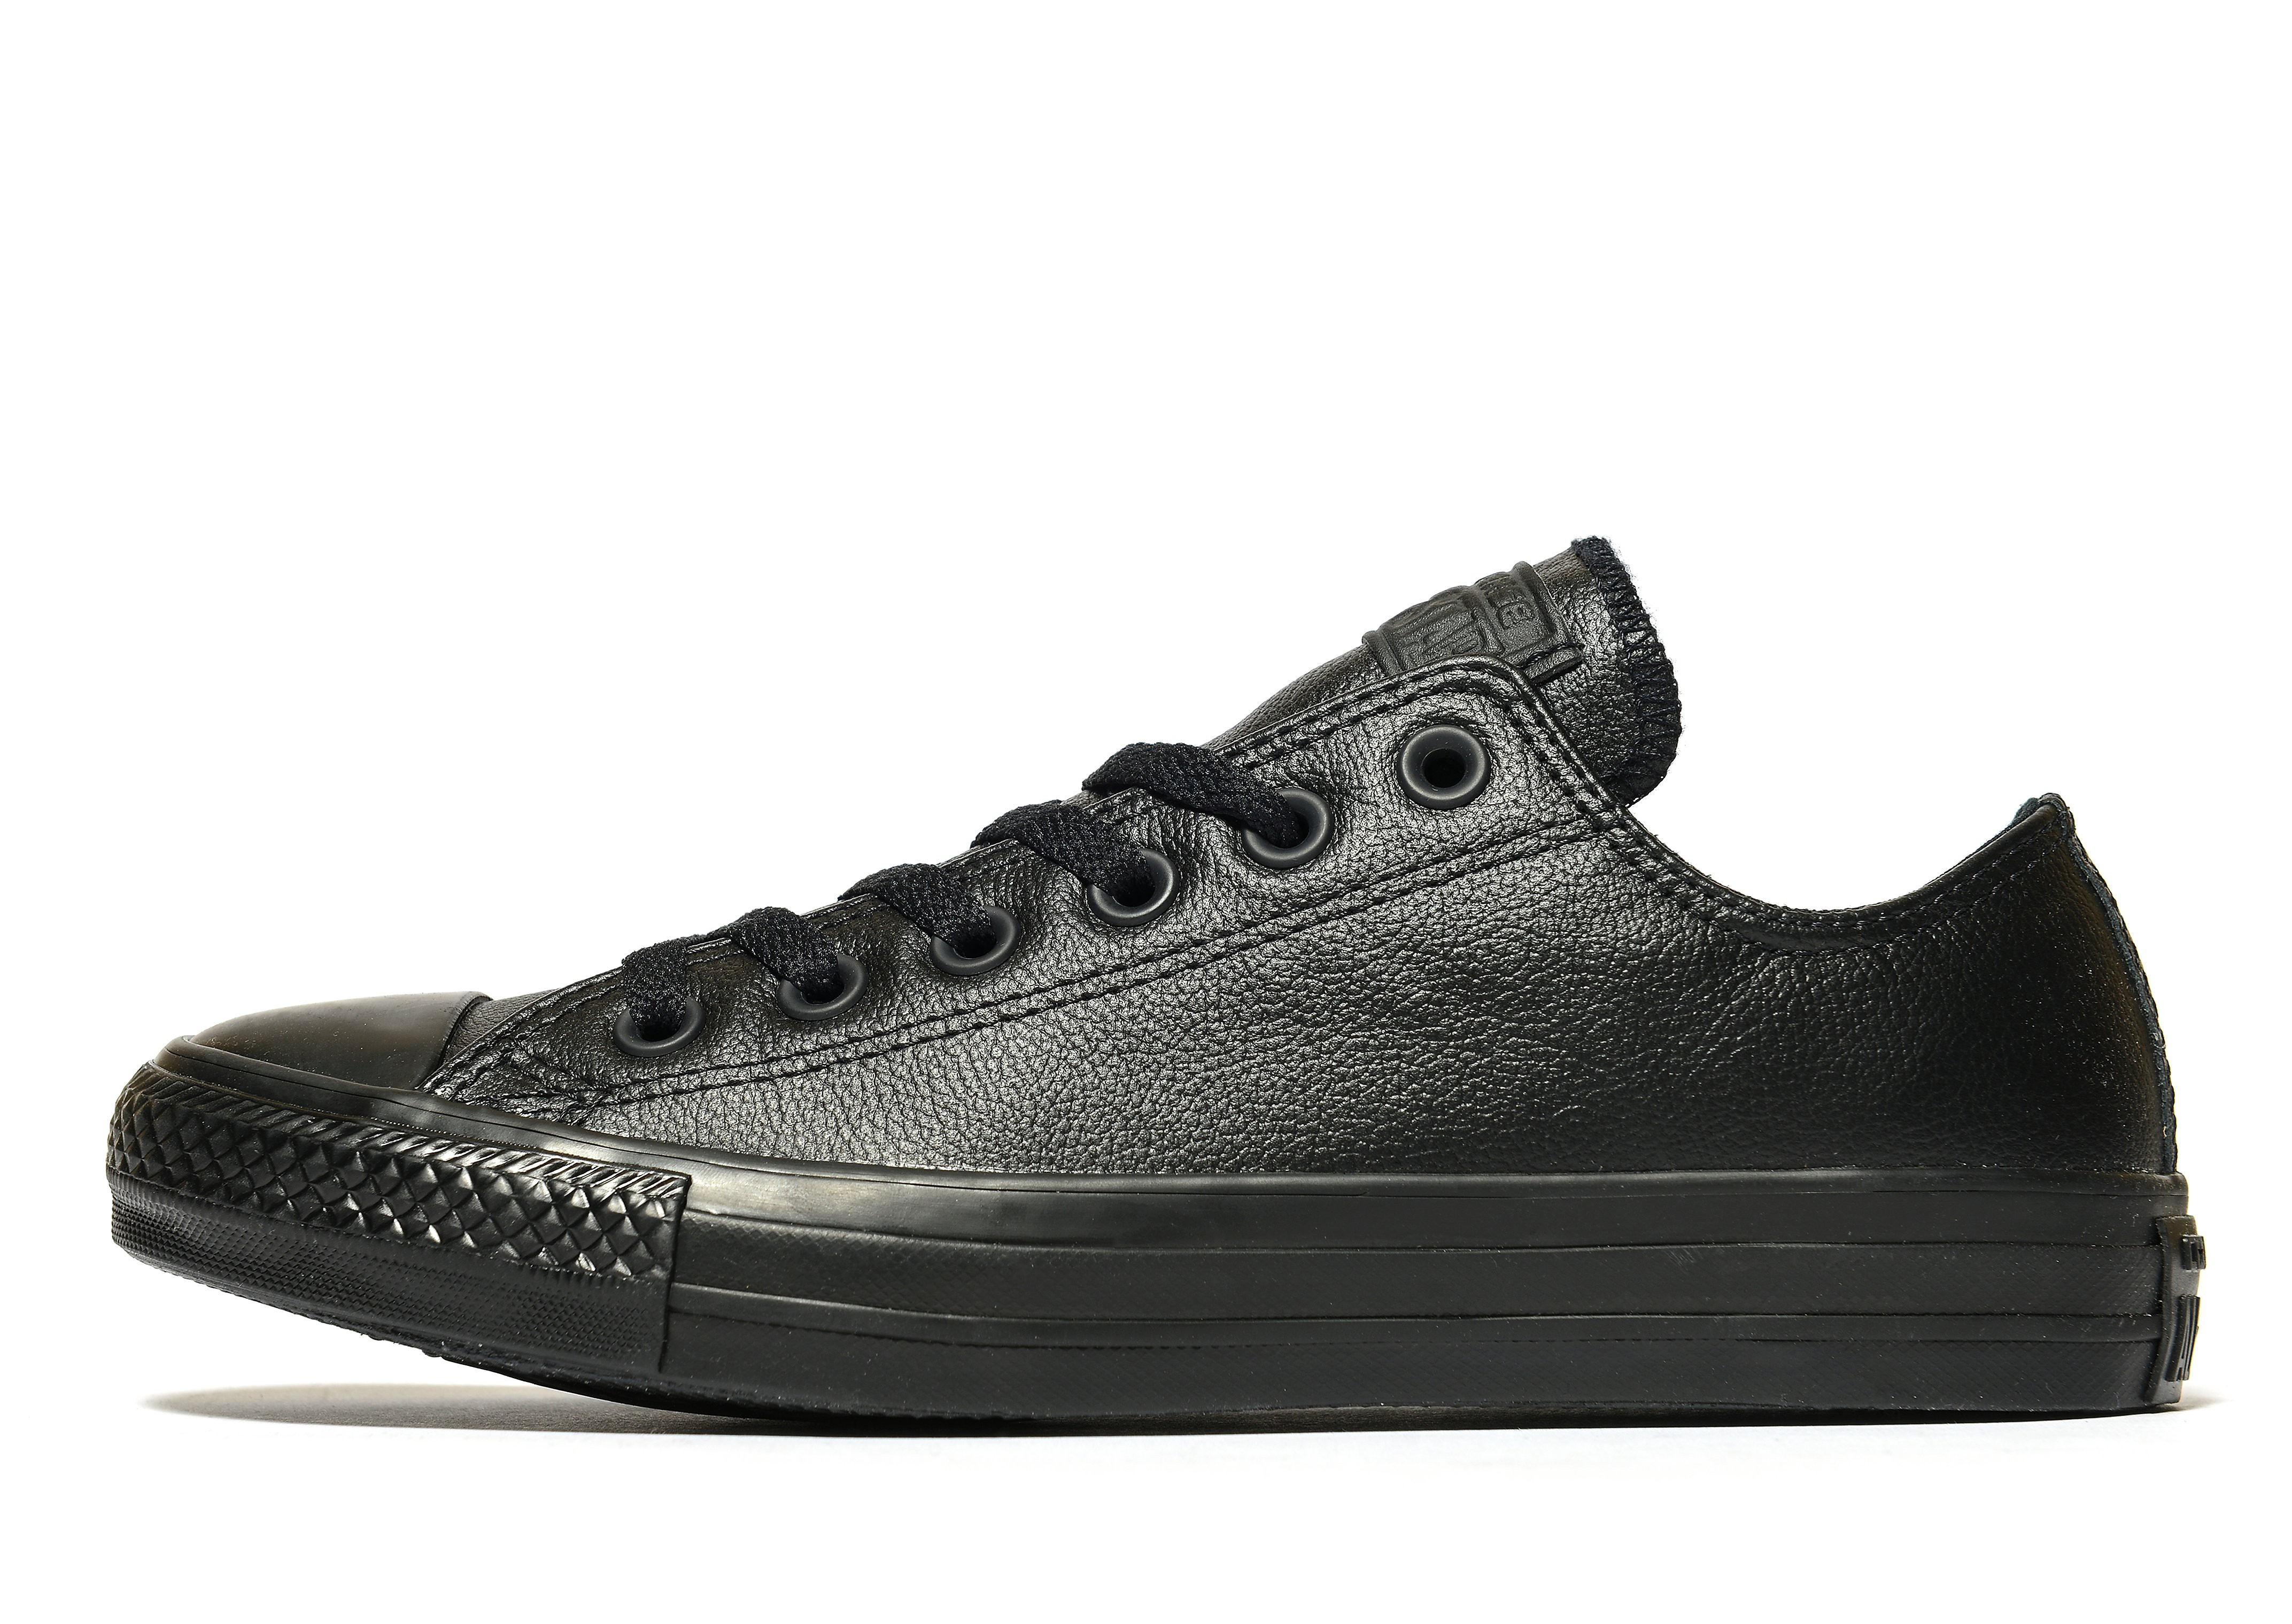 Converse All Star Low Ox pour femmes